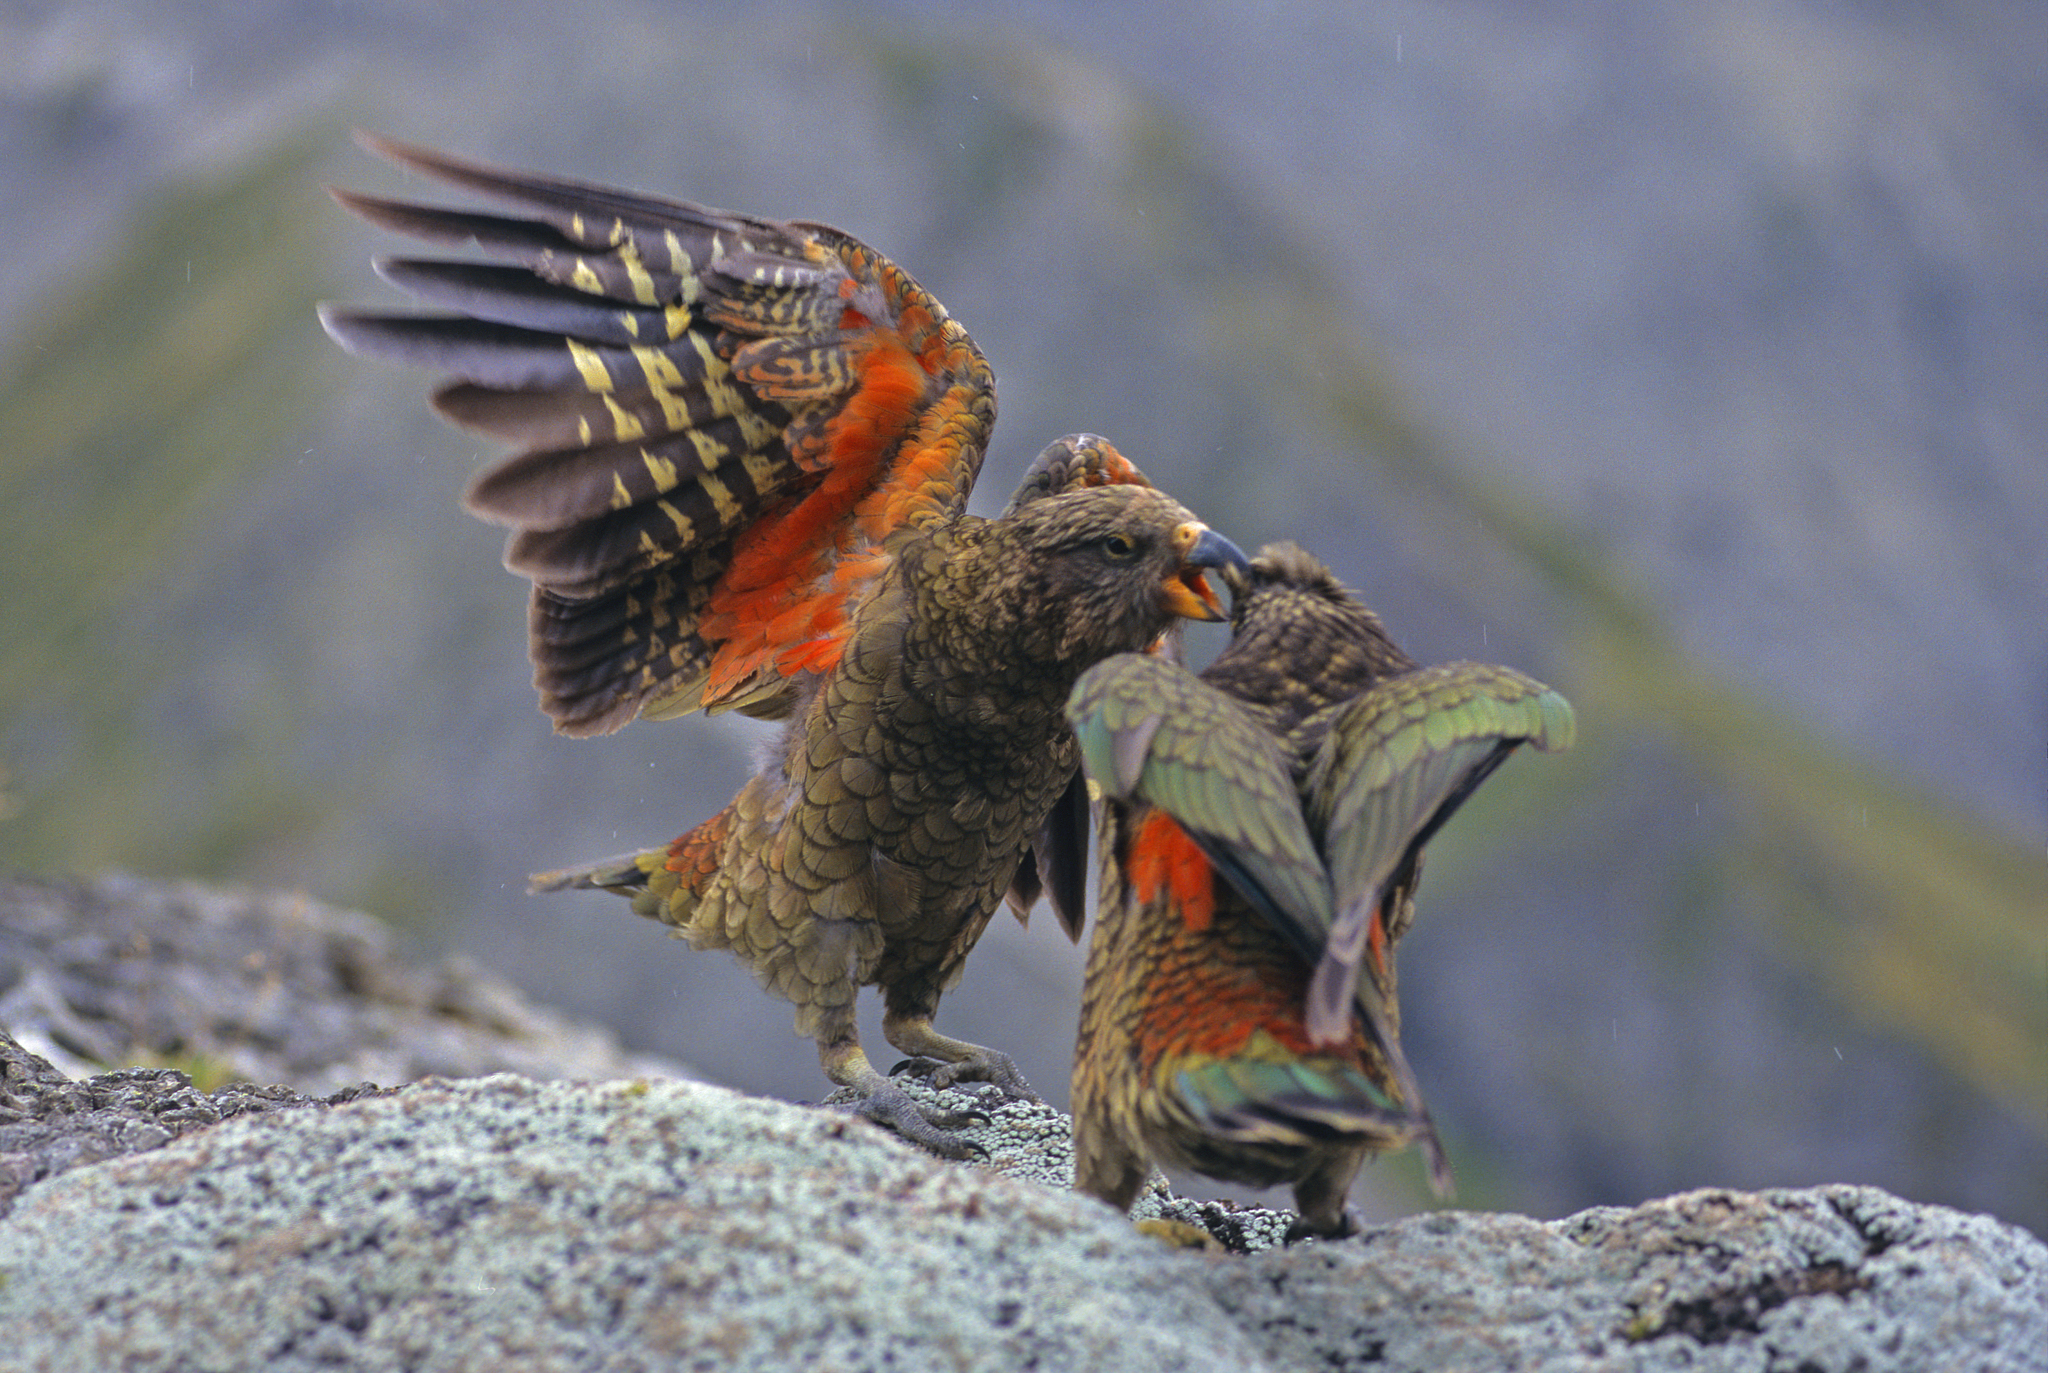 Two young kea play, revealing the flash of orange underwing that contrasts with the rest of their olive green feathers. Photograph by Rod Morris / www.rodmorris.co.nz